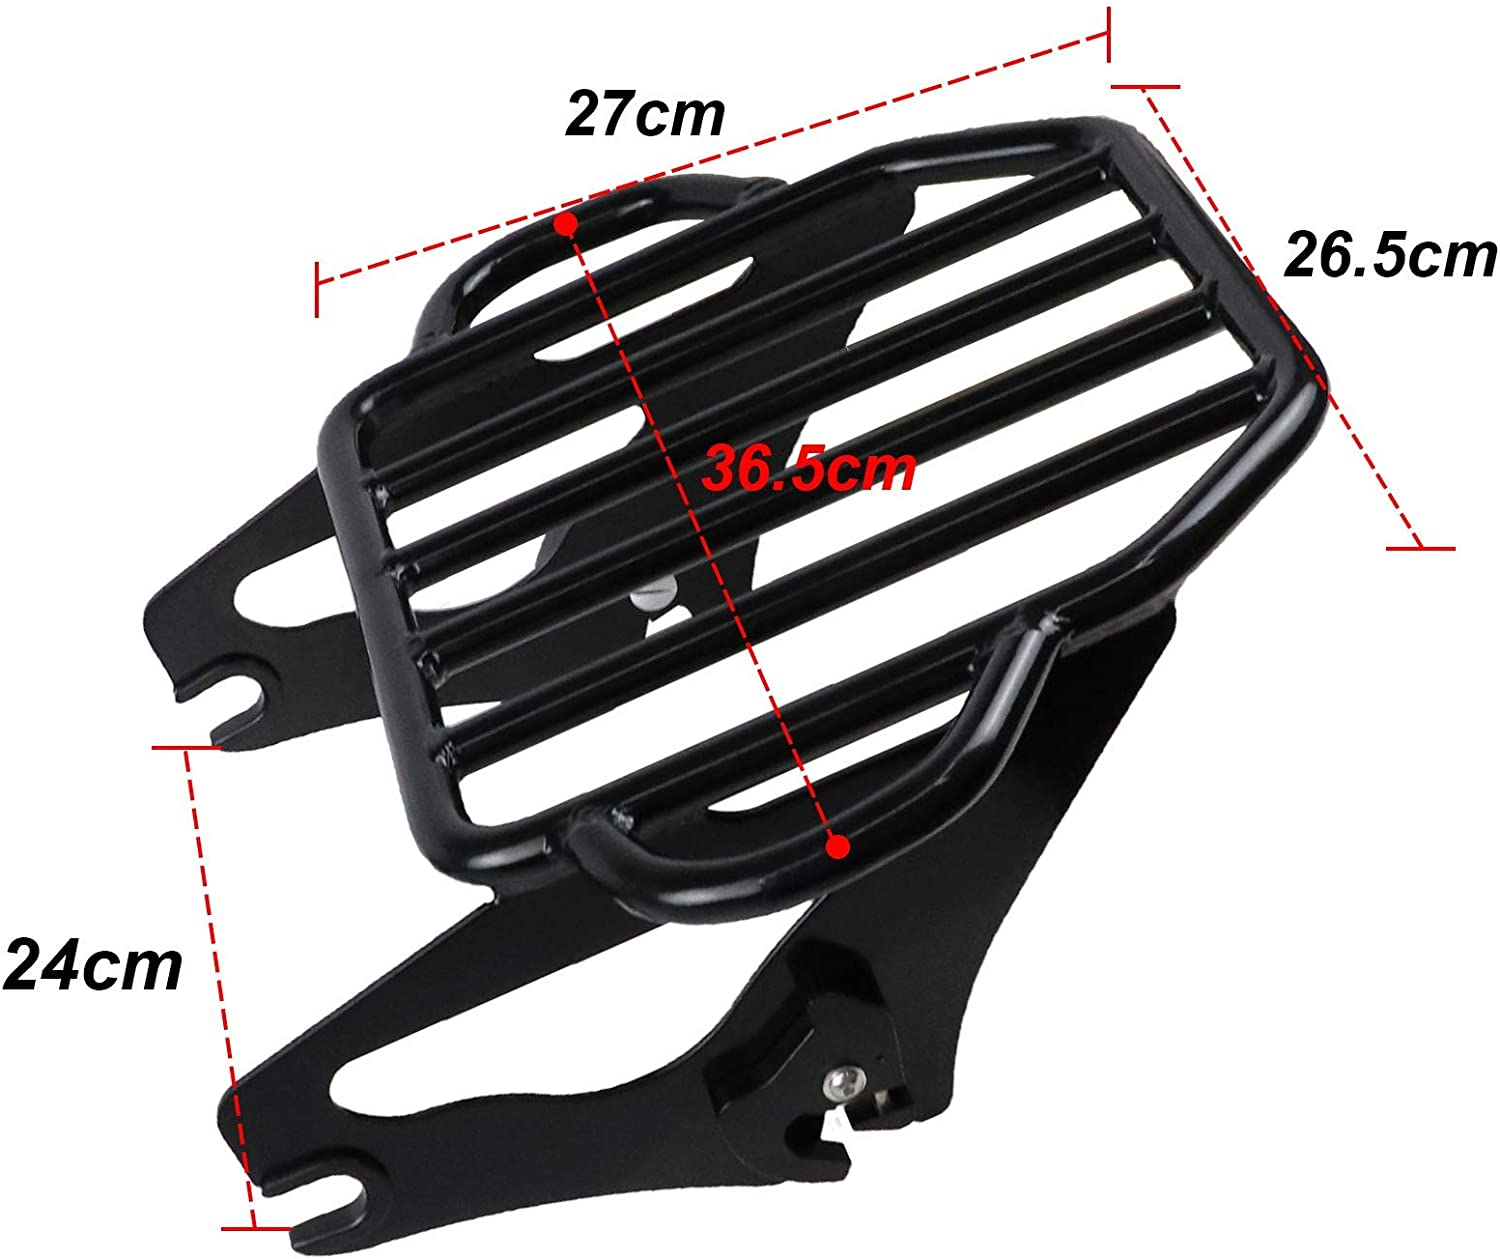 KOLEMO Black Detachable Adjustable Two Up Luggage Rack Mounting Fits For Touring Electra Glide Road King Street Glide Tour Pak 2009-2019